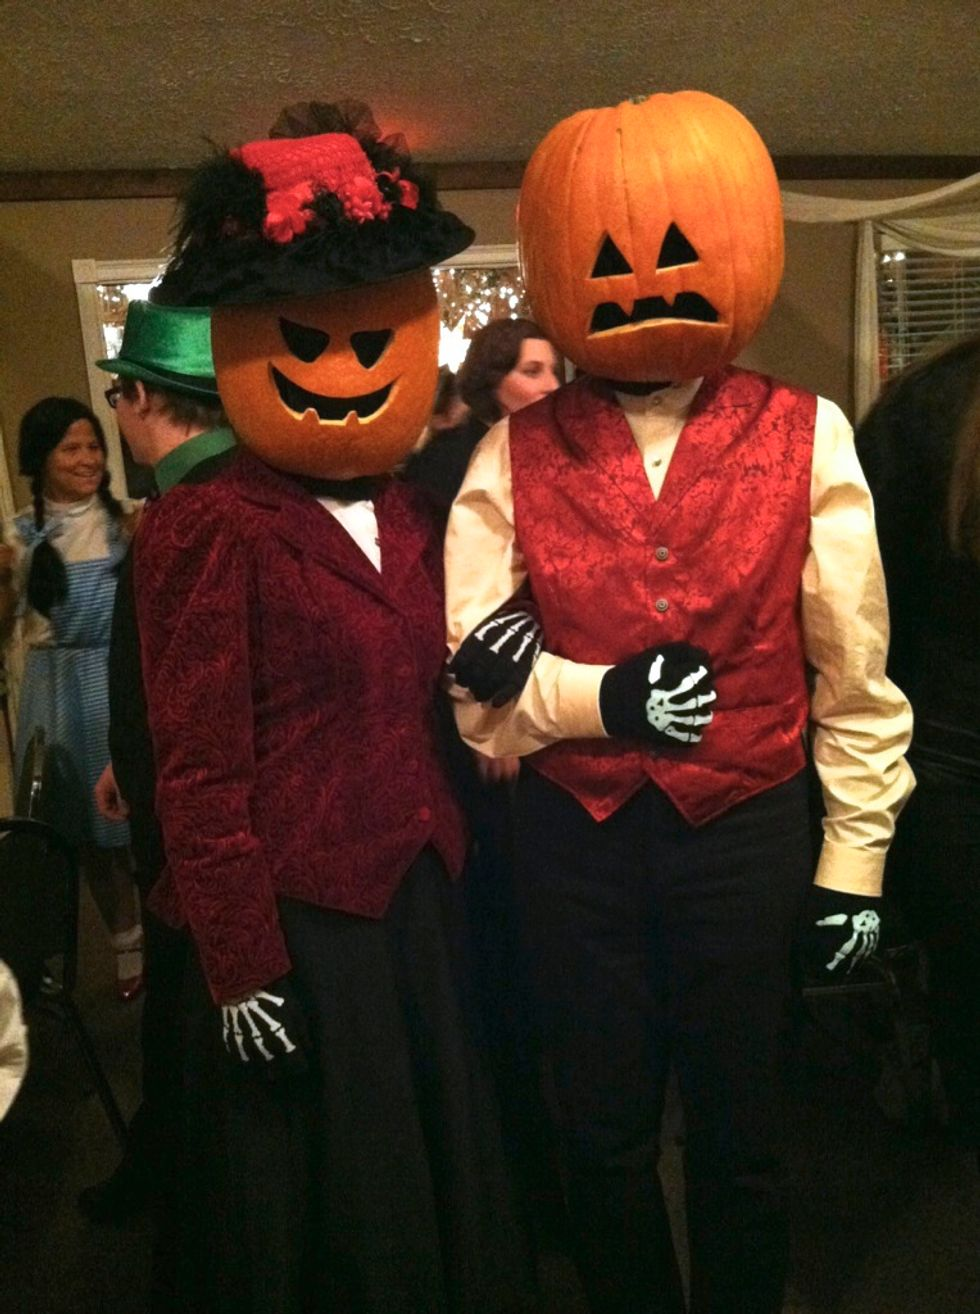 10 Unique Couples' Halloween Costumes You HAVEN'T Seen Done A Bajillion Times Before